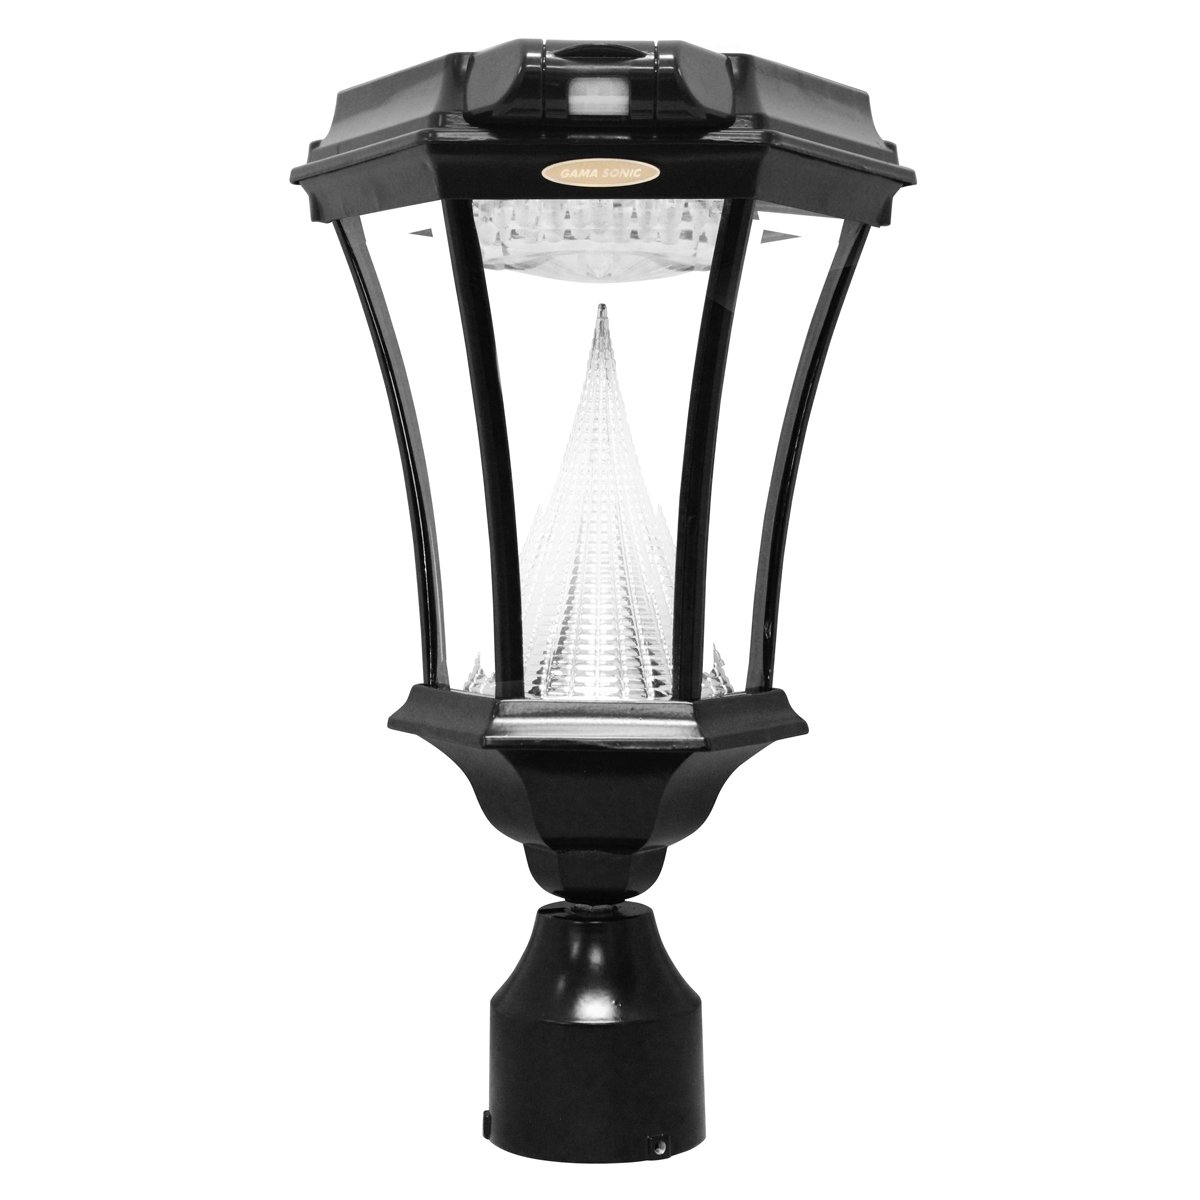 Amazon gama sonic victorian solar outdoor led light fixture amazon gama sonic victorian solar outdoor led light fixture bright white leds polepostwall mount kit black gs 94fpw garden outdoor aloadofball Image collections